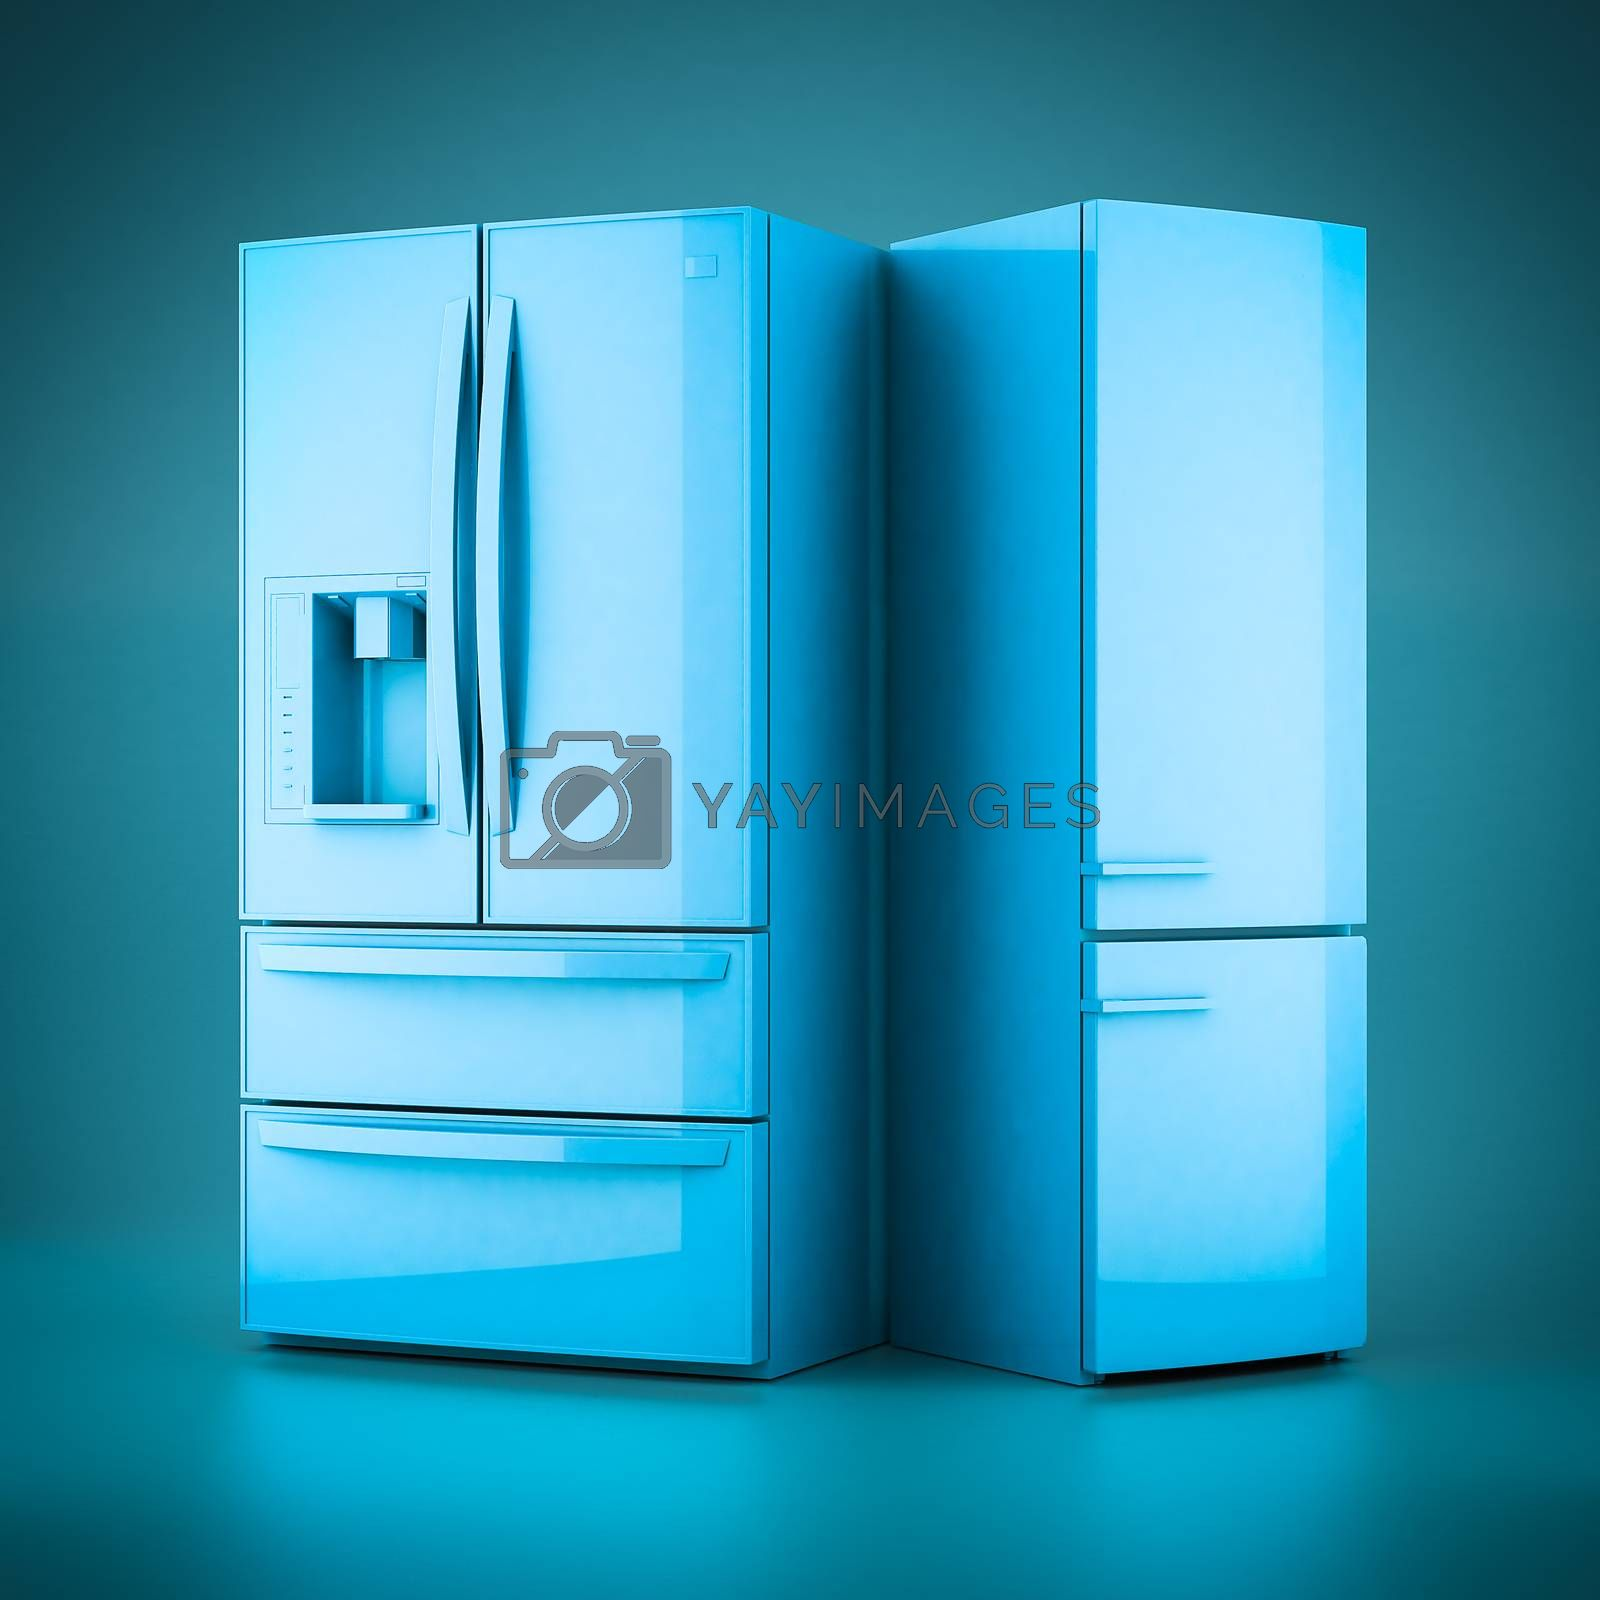 3D rendering beautiful refrigerator on a blue background